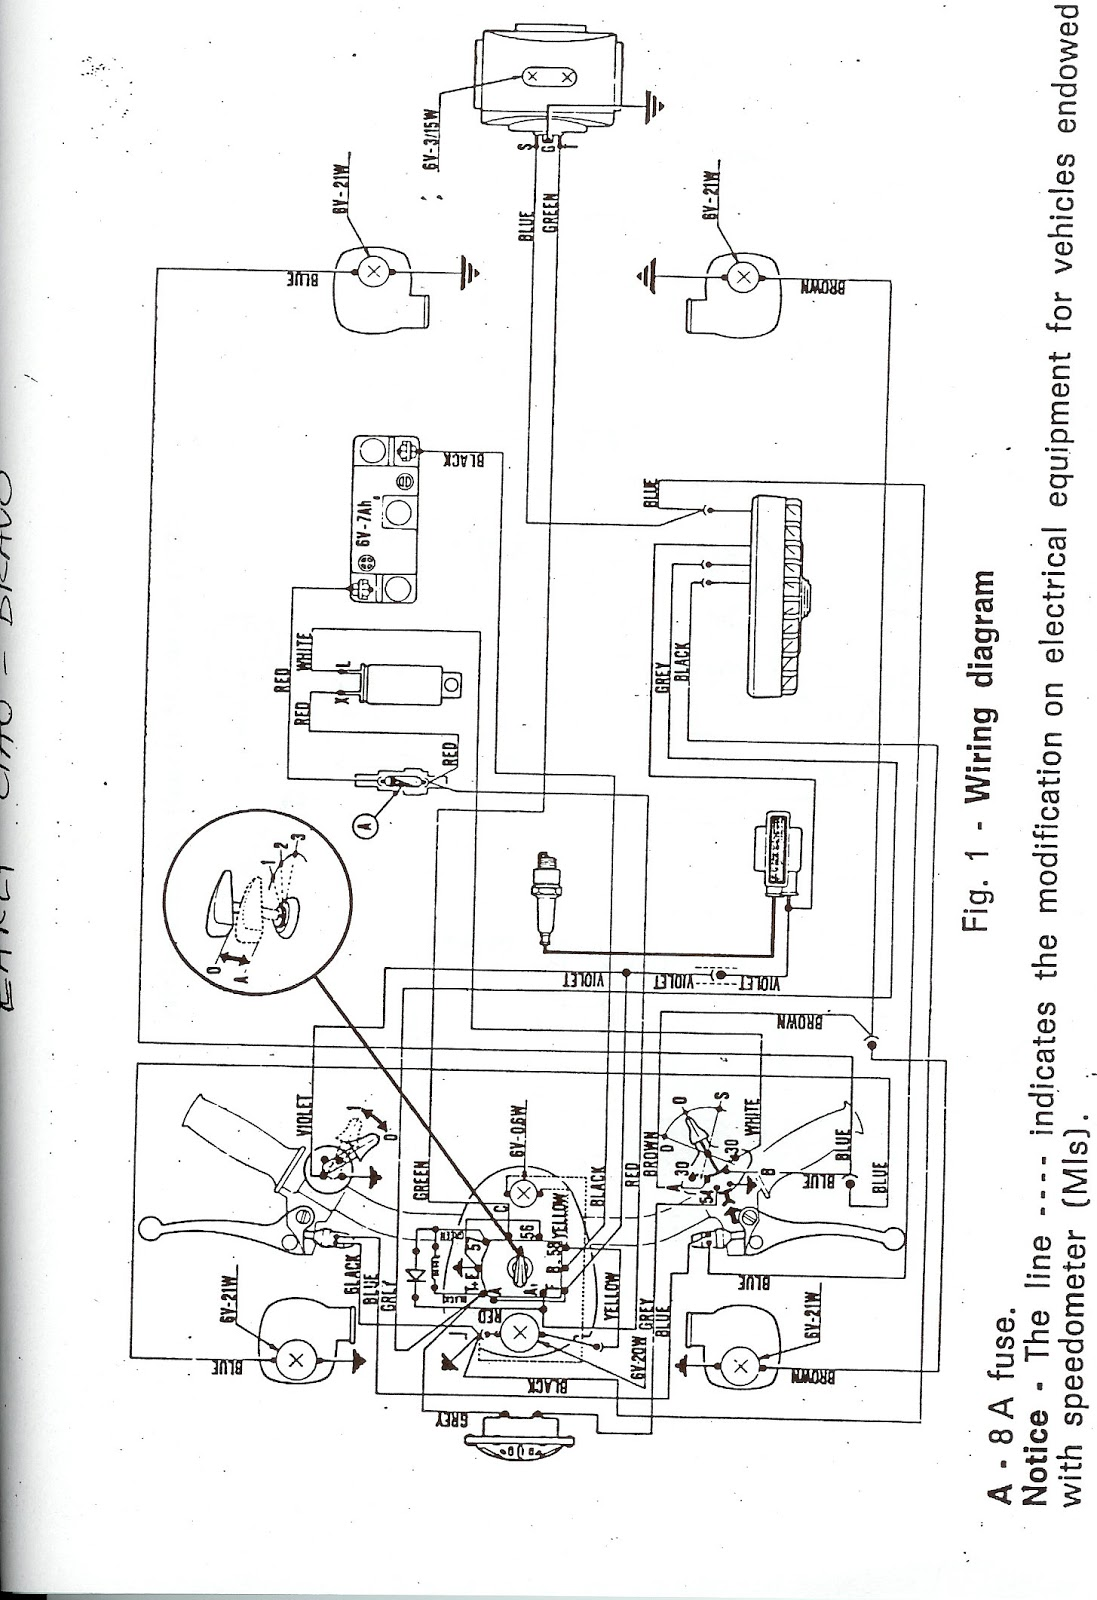 motorcycle stator wiring diagram 1997 vw jetta gys 50cc wire 28 images